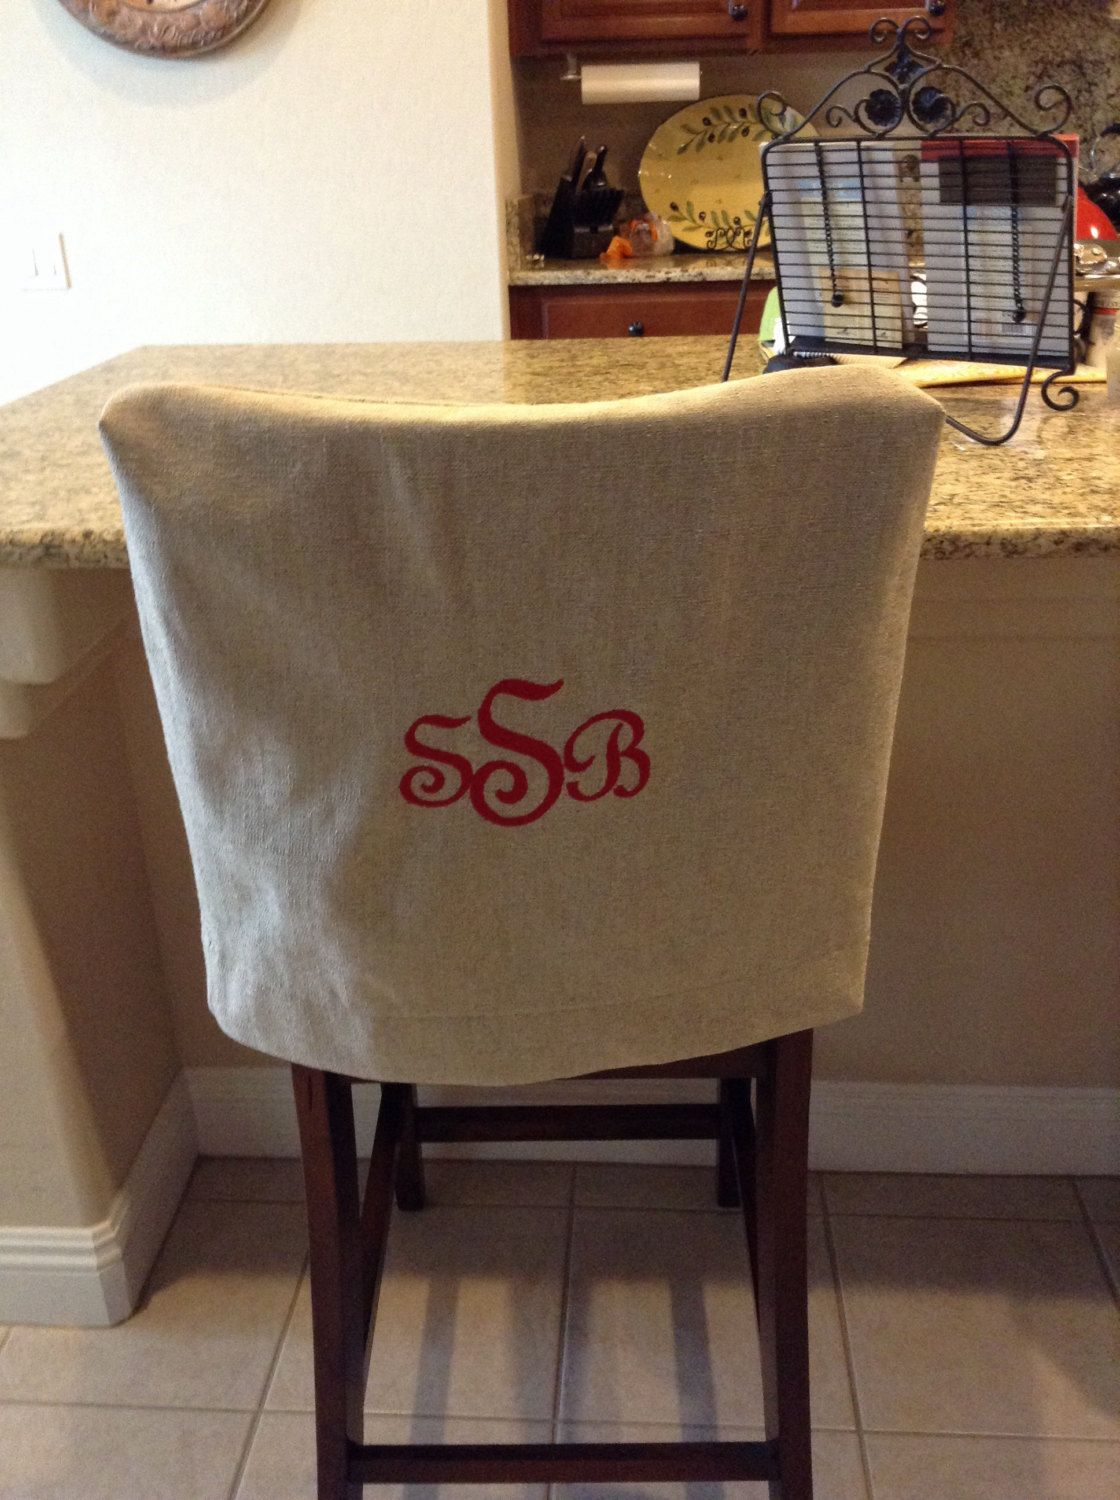 Monogrammed Chair Back Cover Natural Linen Washable Fabric Kitchen Chair Back Cover Cottage Chic Rustic Fitted Cover Removable Sillas Muebles Manualidades